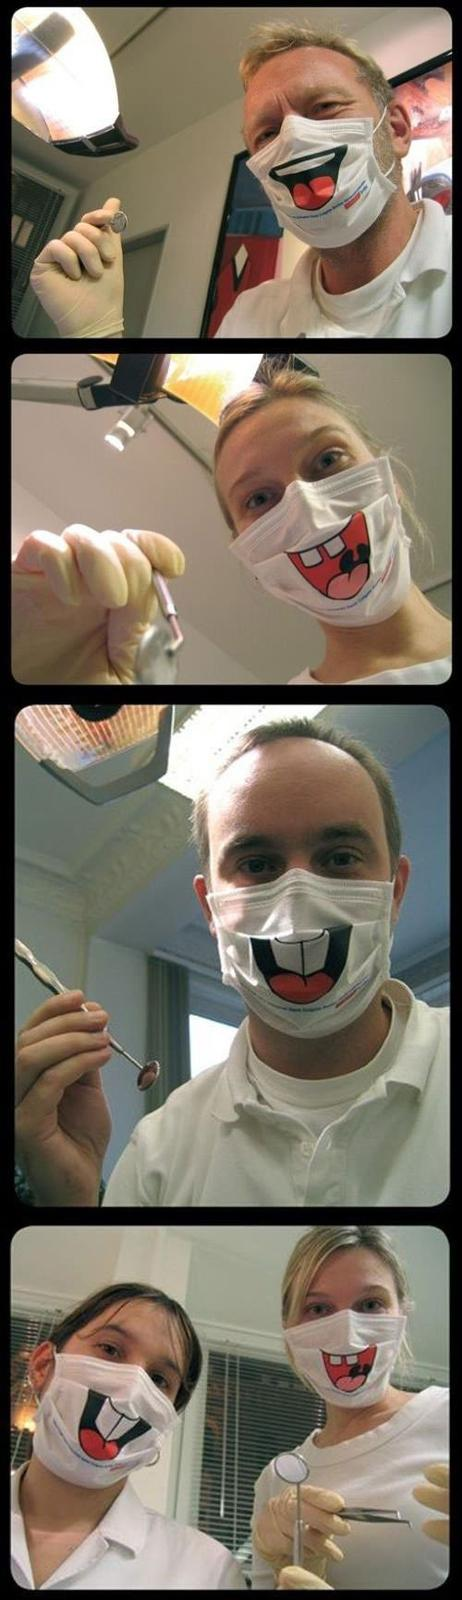 Creepy Dentist Smile Masks